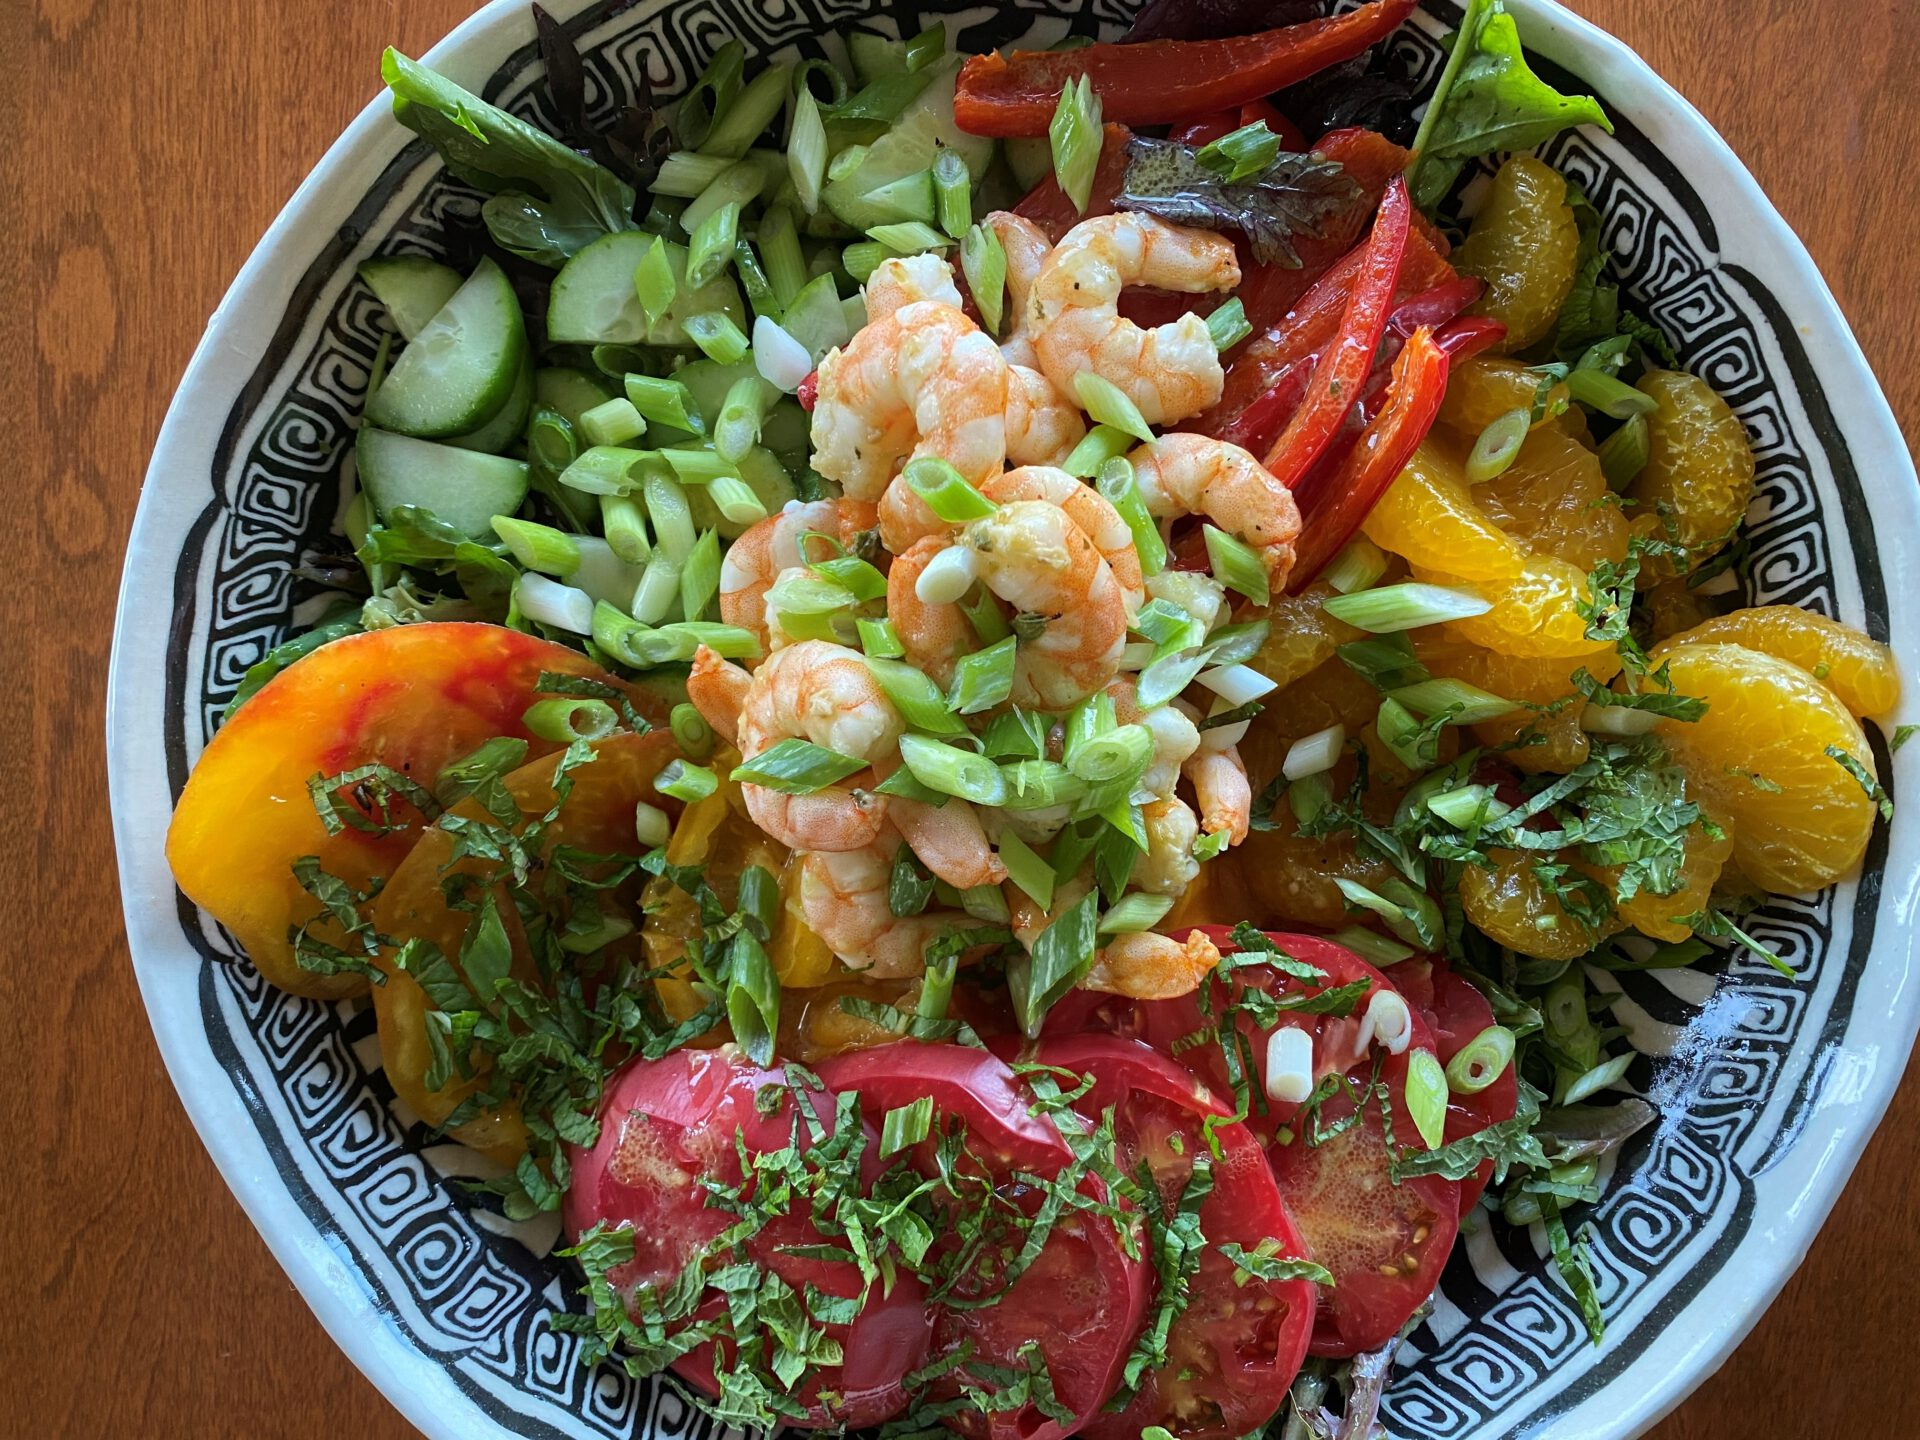 summer salad of shrimp, lettuces, heirloom tomatoes, red peppers, and basil